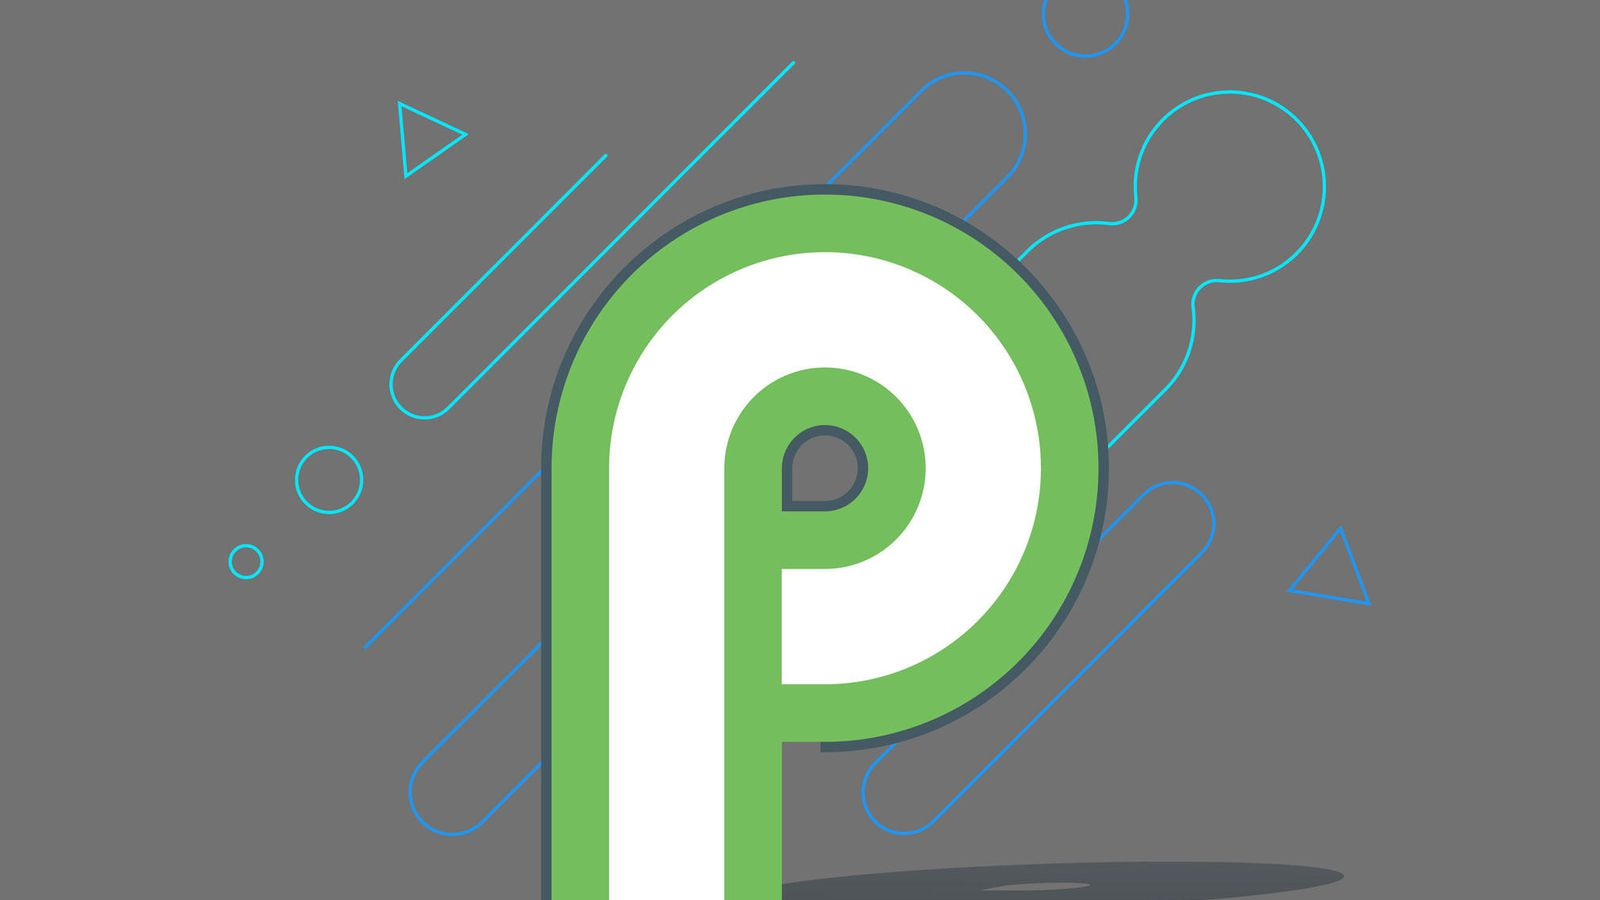 Android P Blackberry